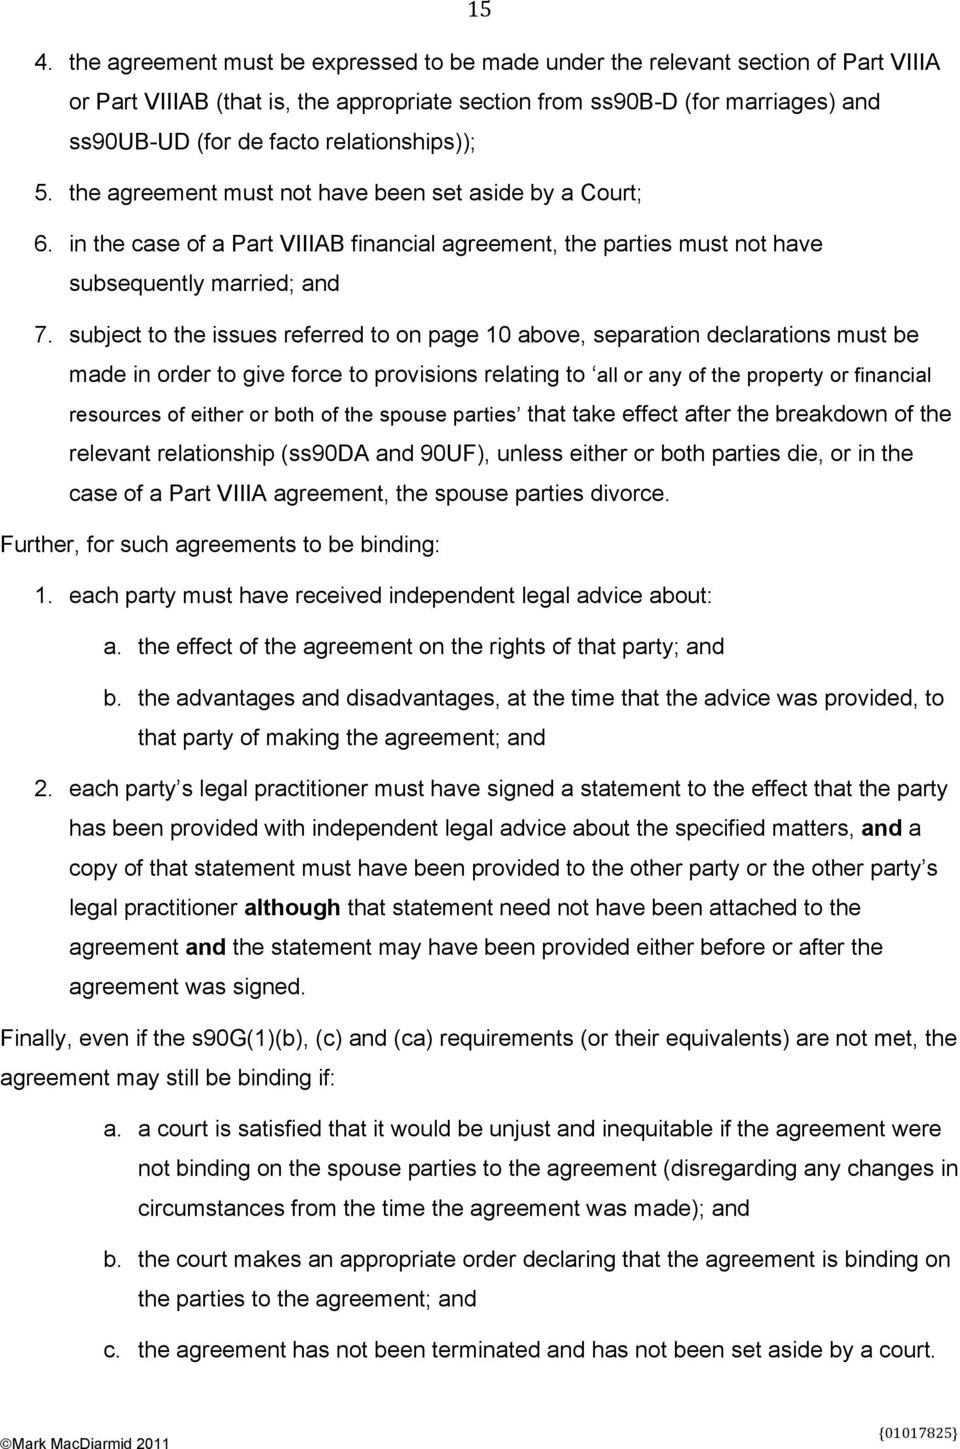 Binding Financial Agreements Do The Reforms Make Any Difference Pdf